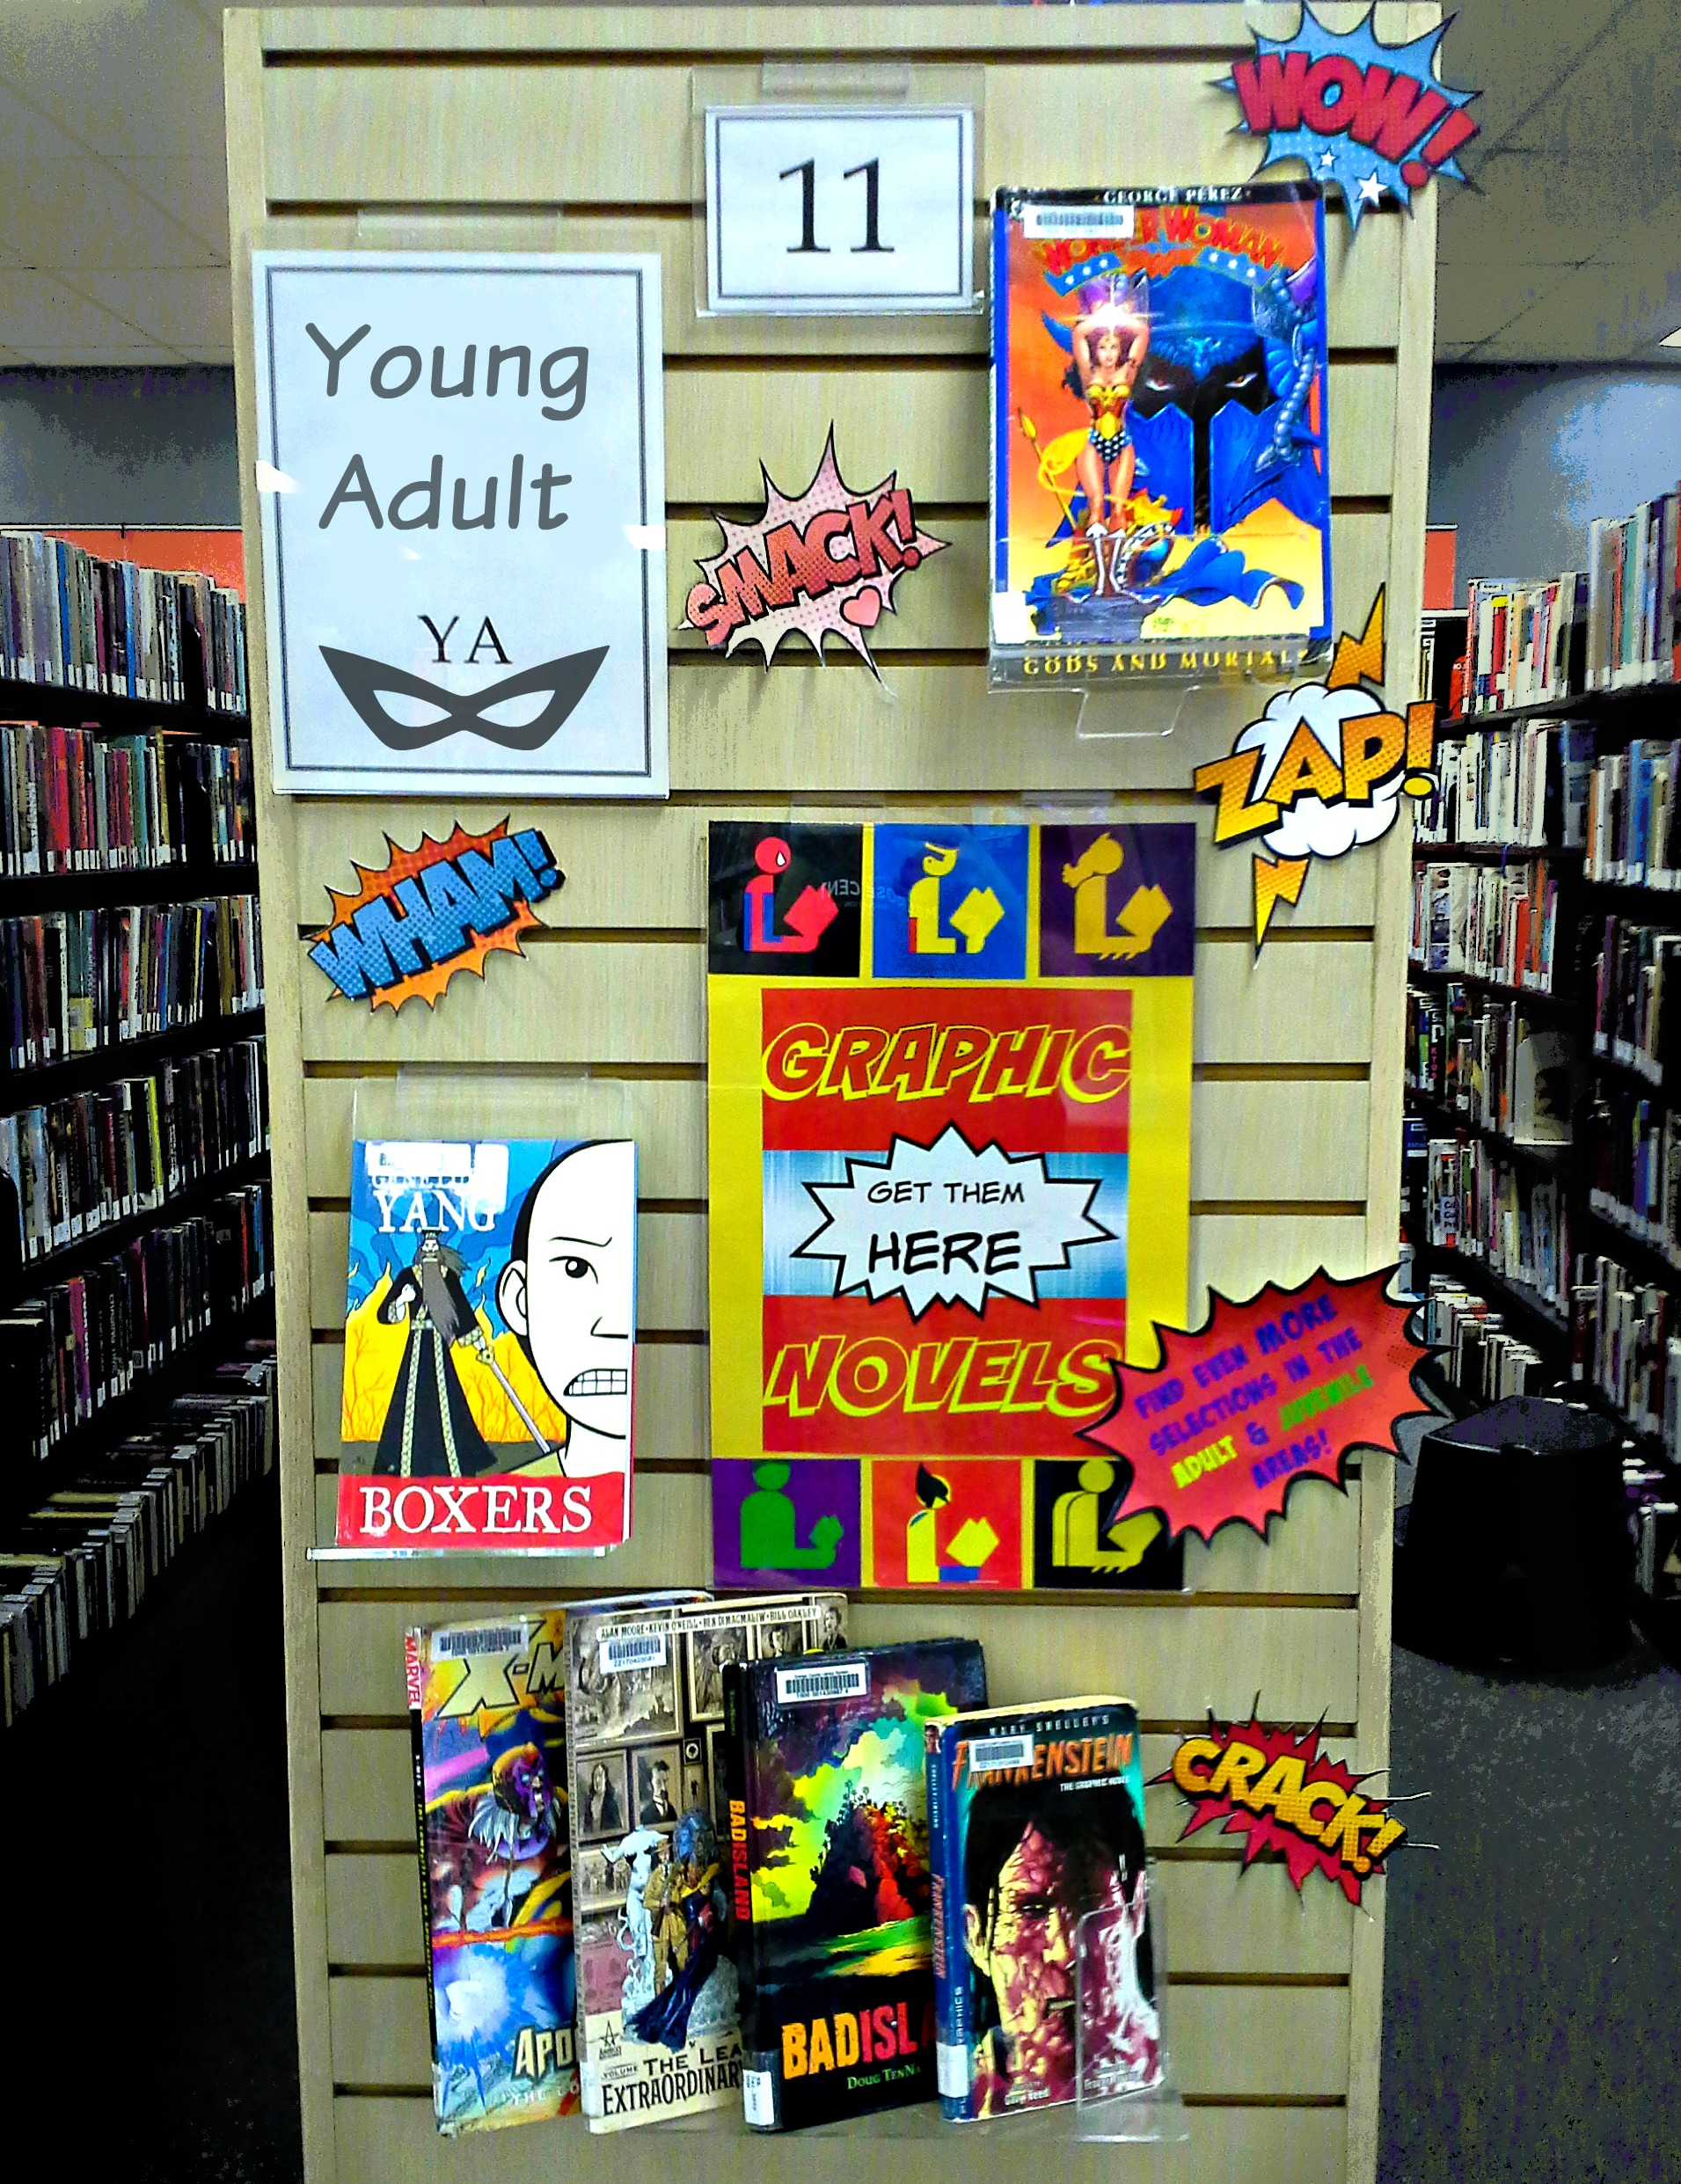 Fun YA library display higlighting Graphic Novels. Would work for adult and J, too!